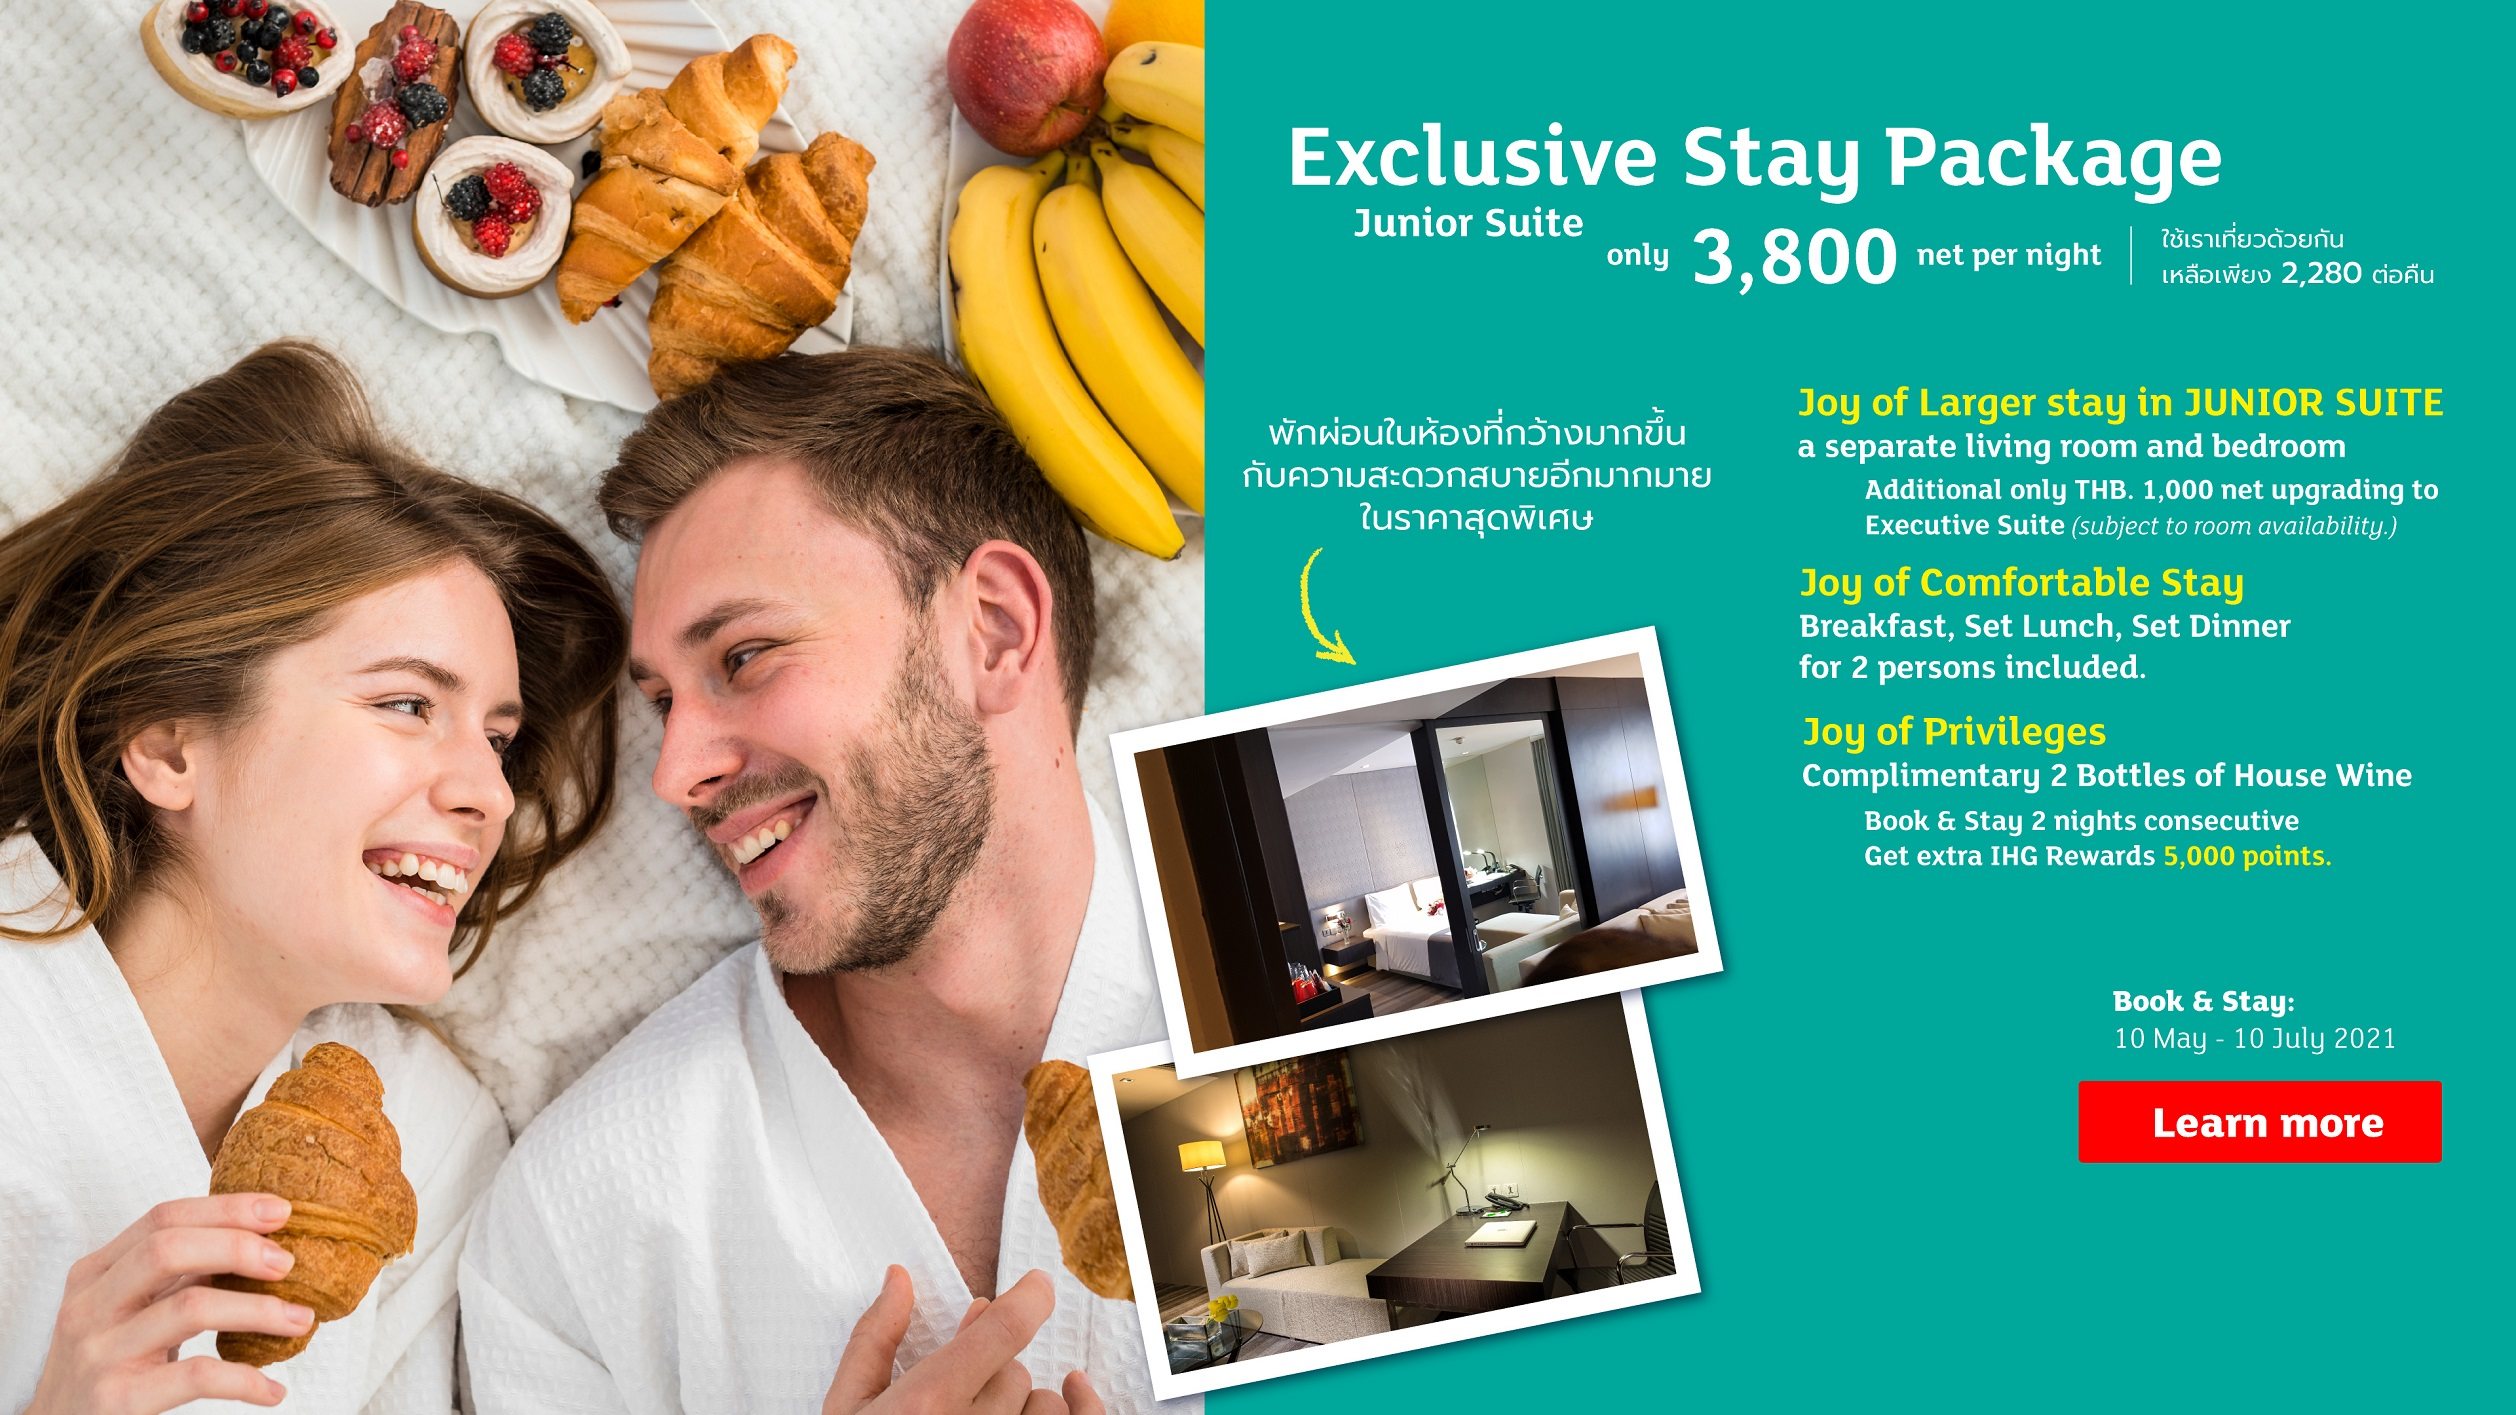 Exclusive Stay Package